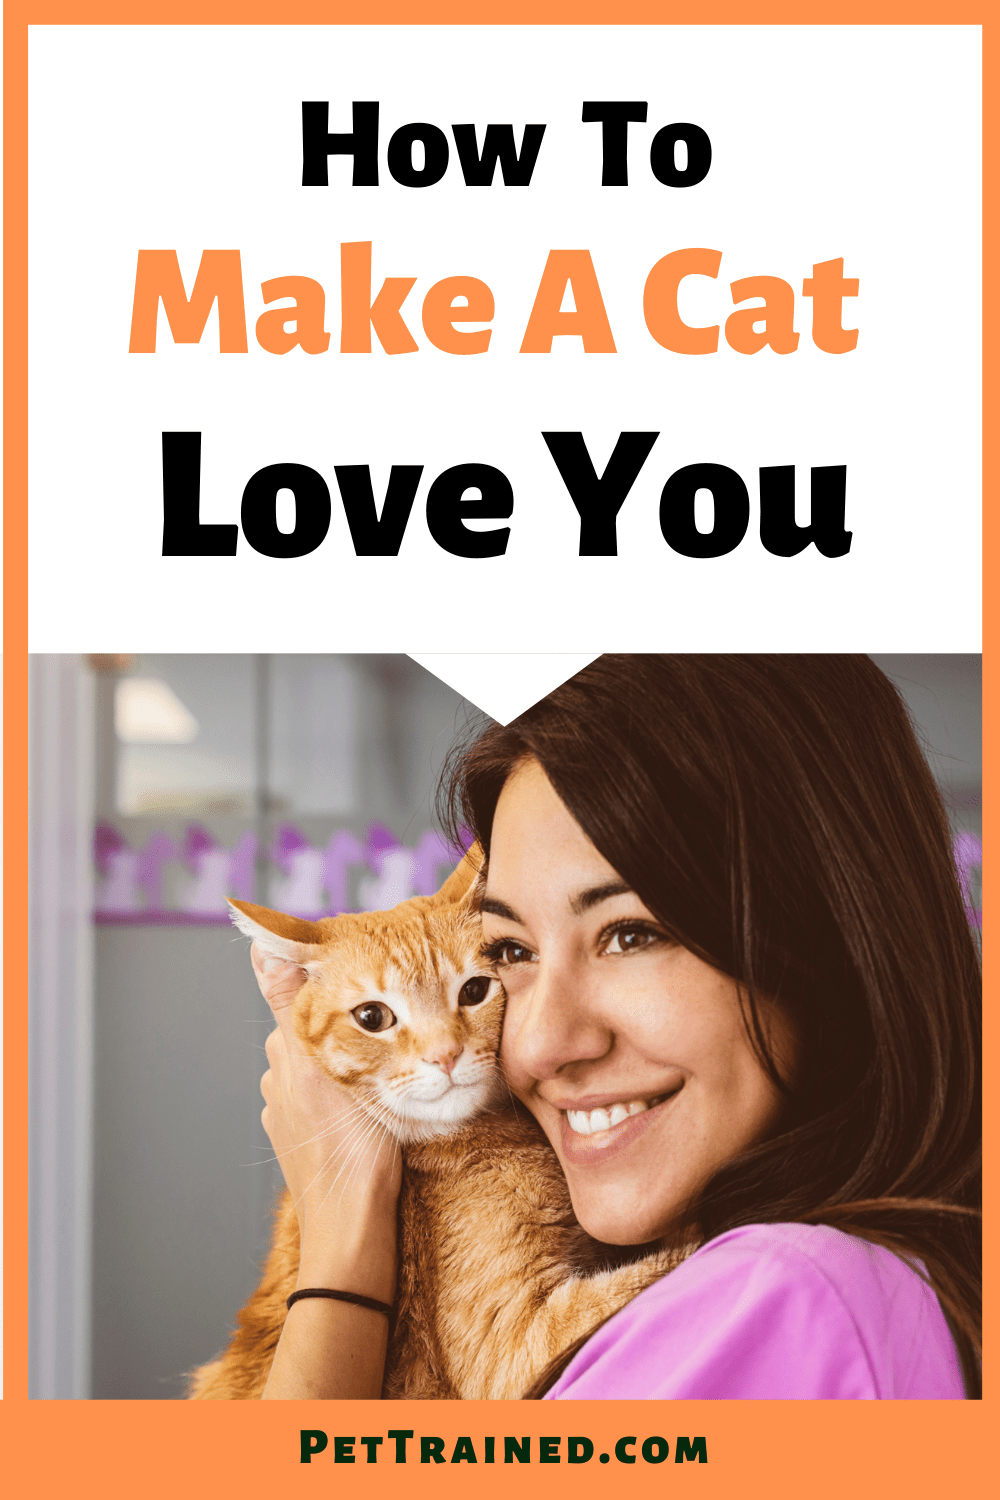 How to make a cat love you fast